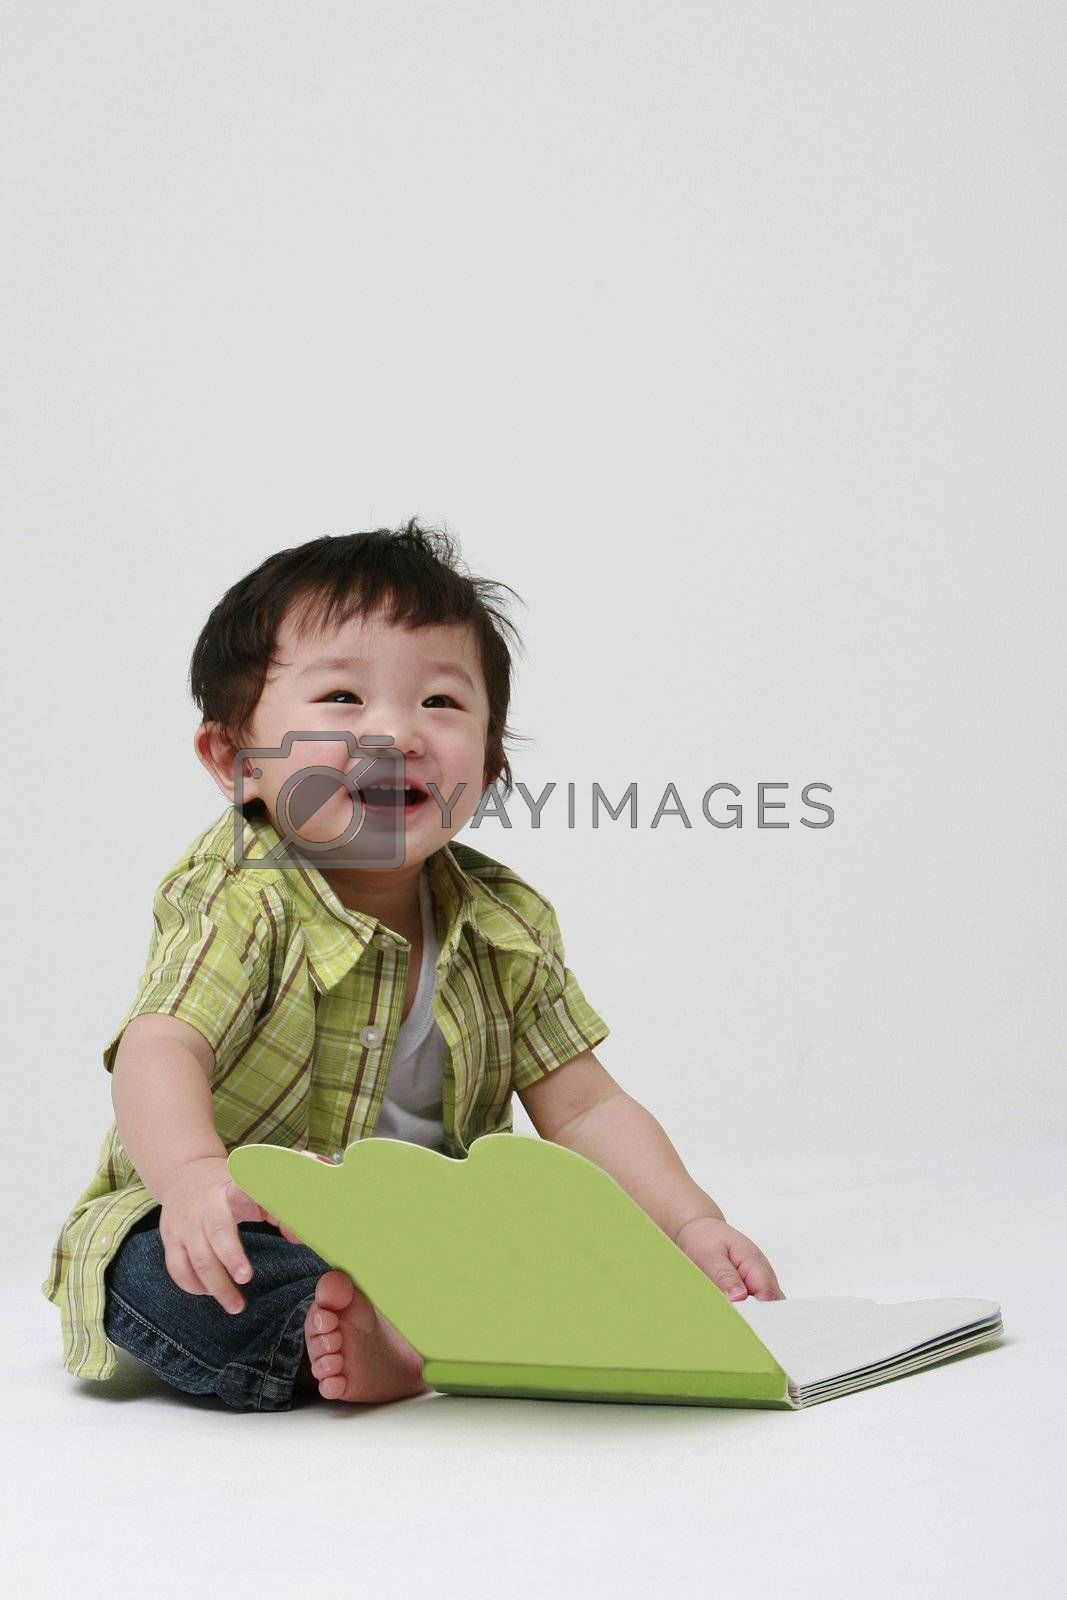 Cute toddler with a book